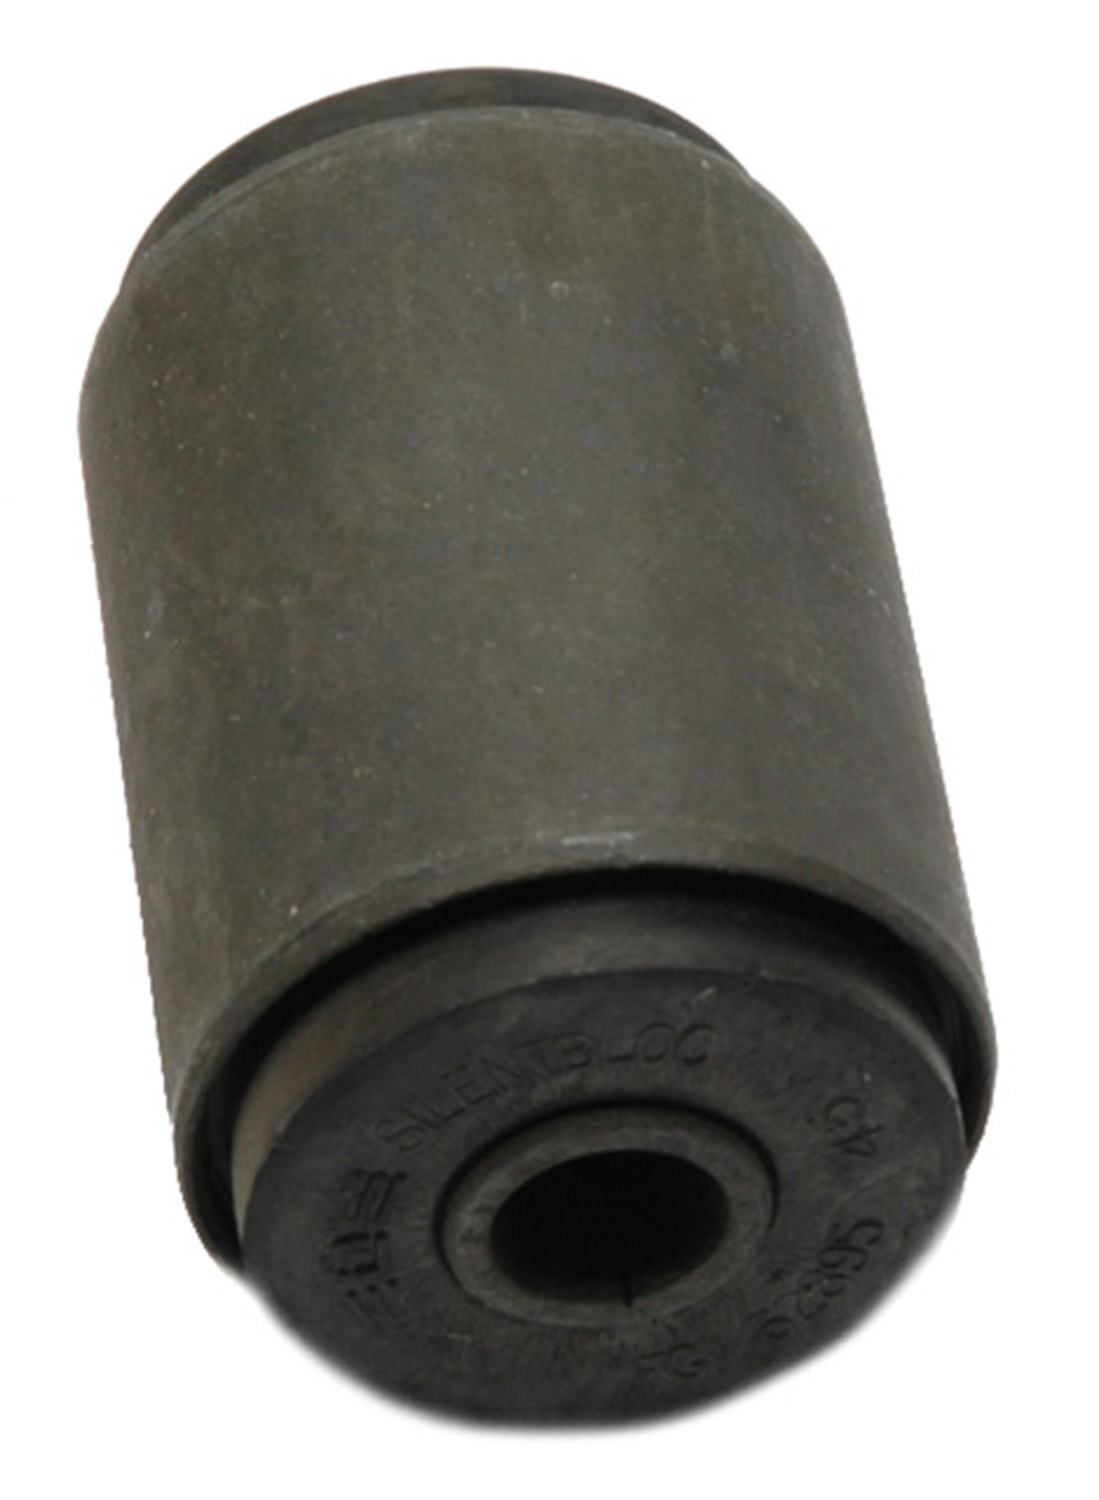 ACDELCO PROFESSIONAL - Leaf Spring Bushing - DCC 45G15351